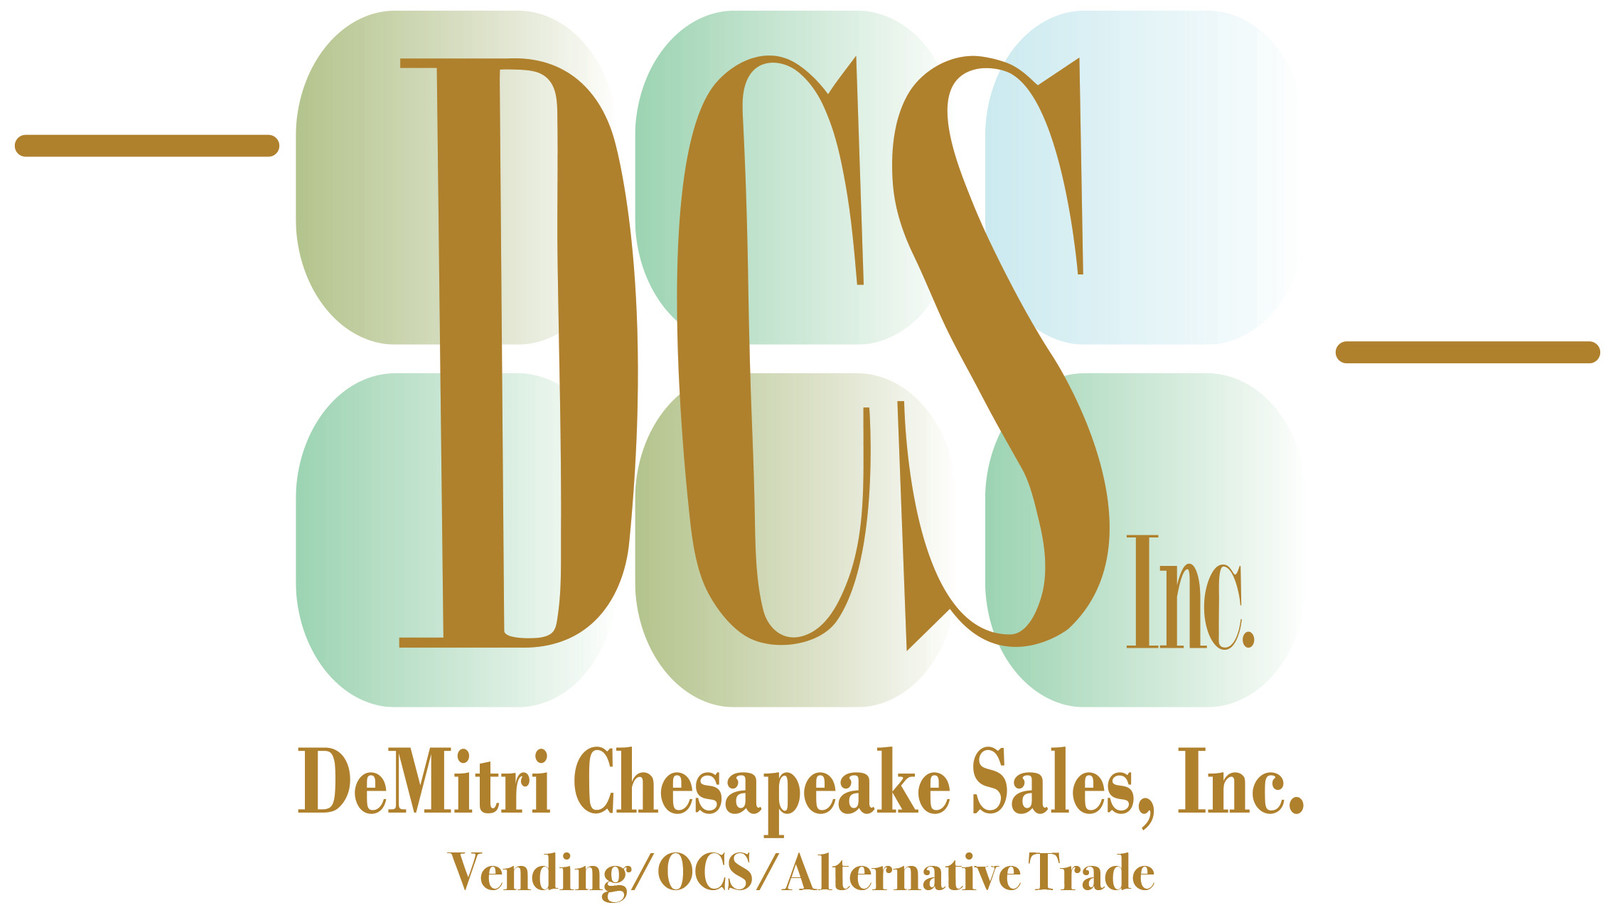 Demitri Chesapeake Sales, Inc. (DCS)